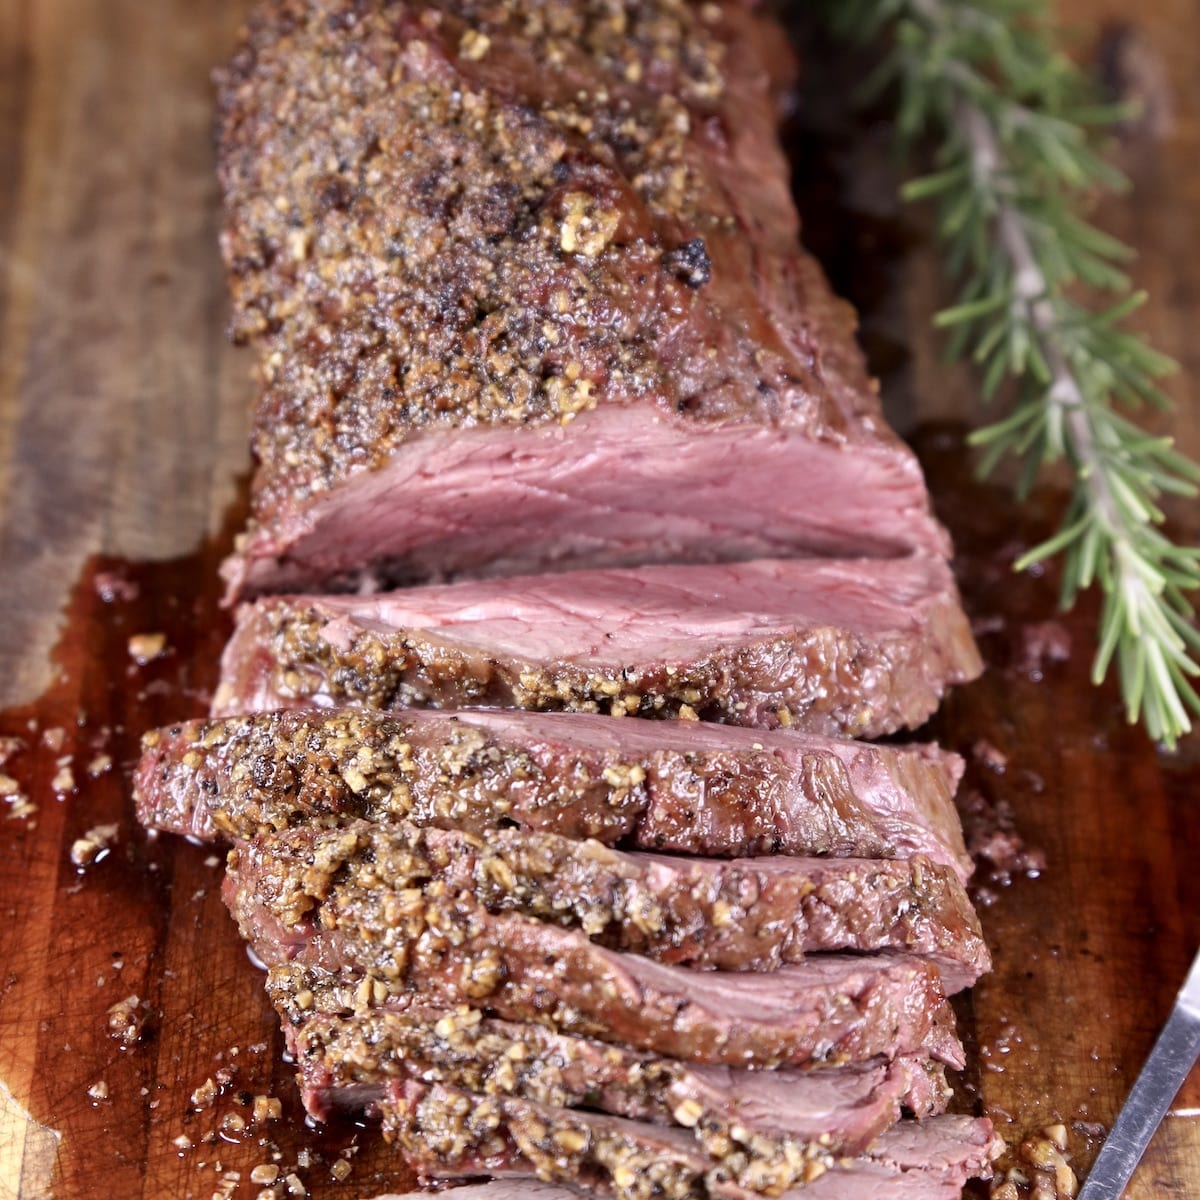 Grilled Garlic Butter beef Tenderloin partially sliced on a cutting board with rosemary sprig